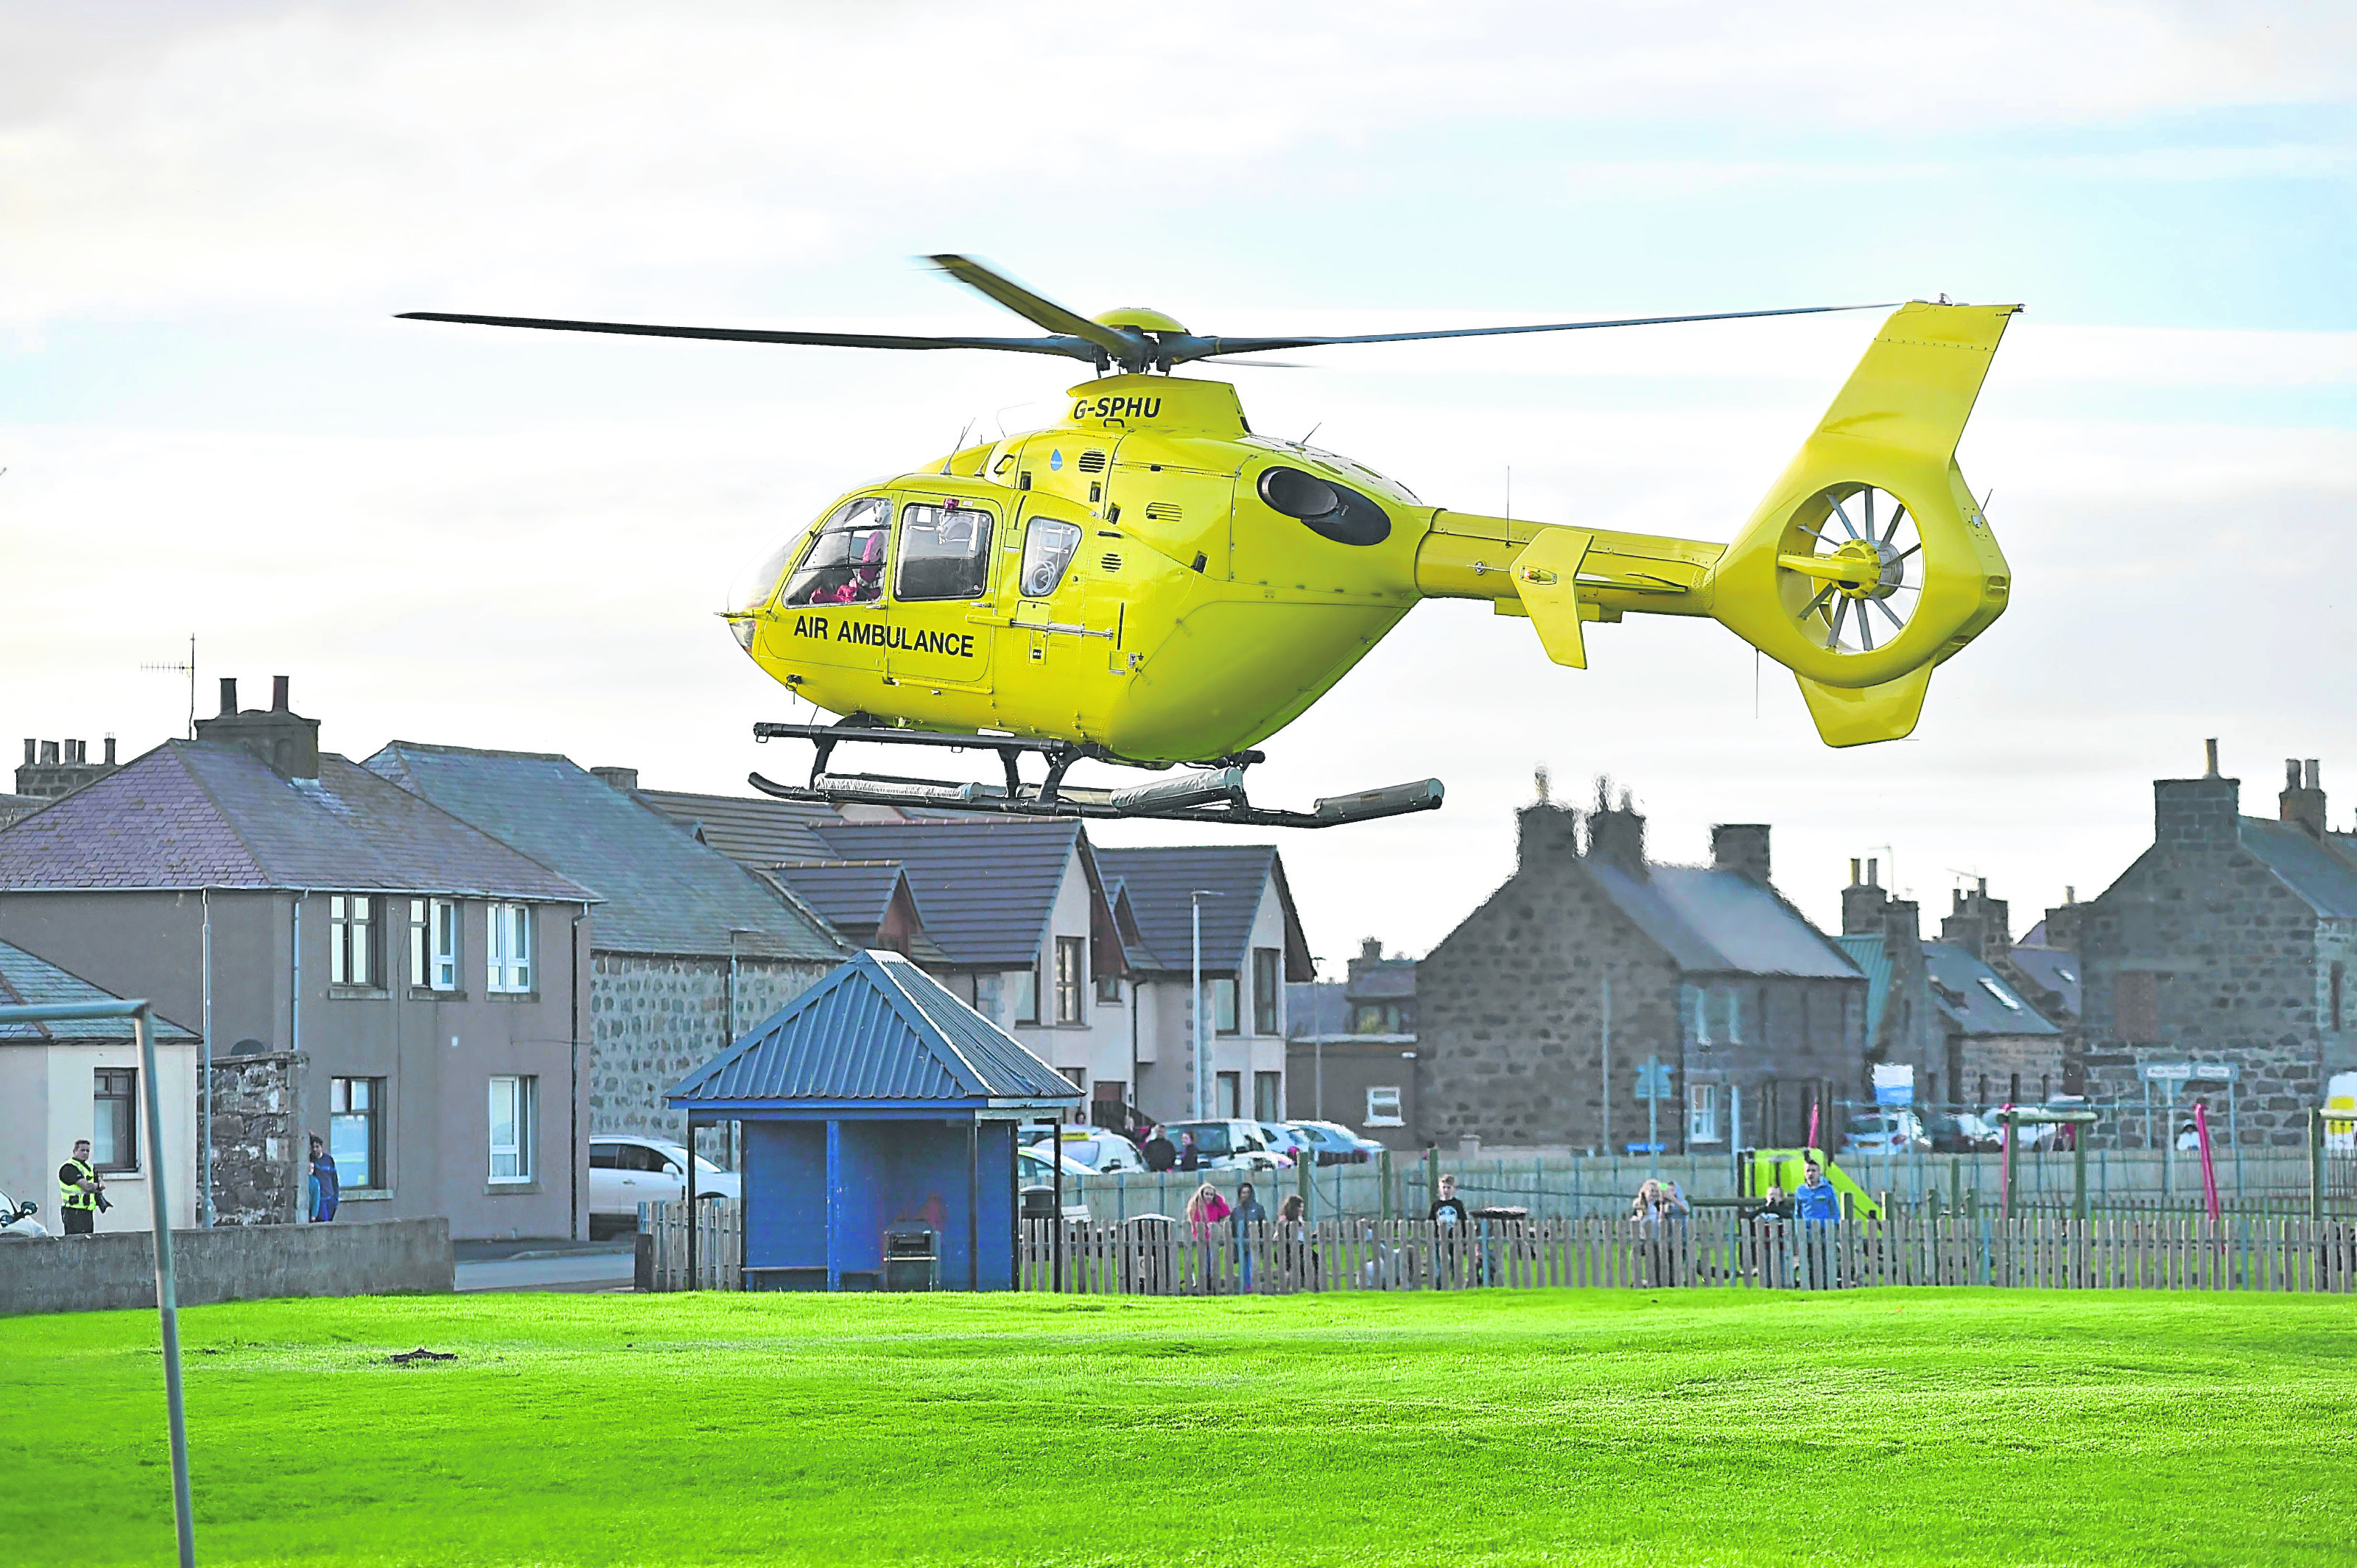 The air ambulance leaves Rosehearty